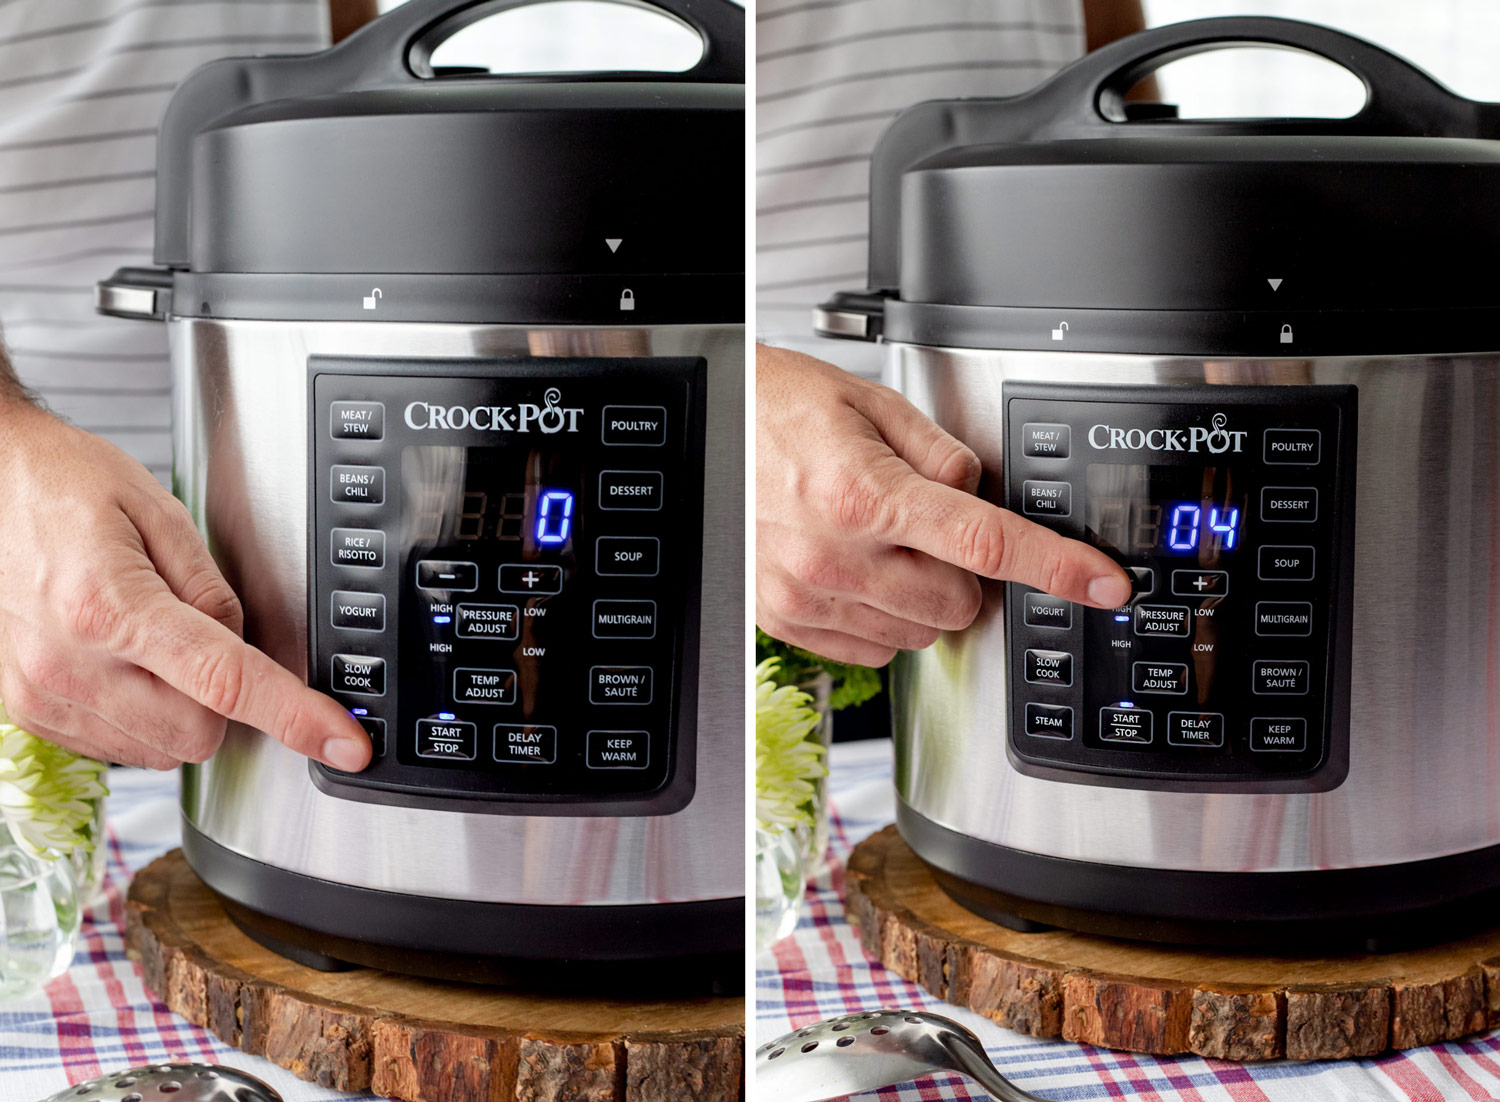 This Crock-Pot® Express Pressure Cooker 6QT Clambake makes for a delicious seafood dinner recipe that's perfect for summer entertaining but easy enough for weeknight cooking. #sponsored #ElleTalk #MyCrockPotSummer #CrockPotRecipes #PressureCooker #ClamBake #DinnerRecipe #EasyDinnerRecipe #ClamRecipe